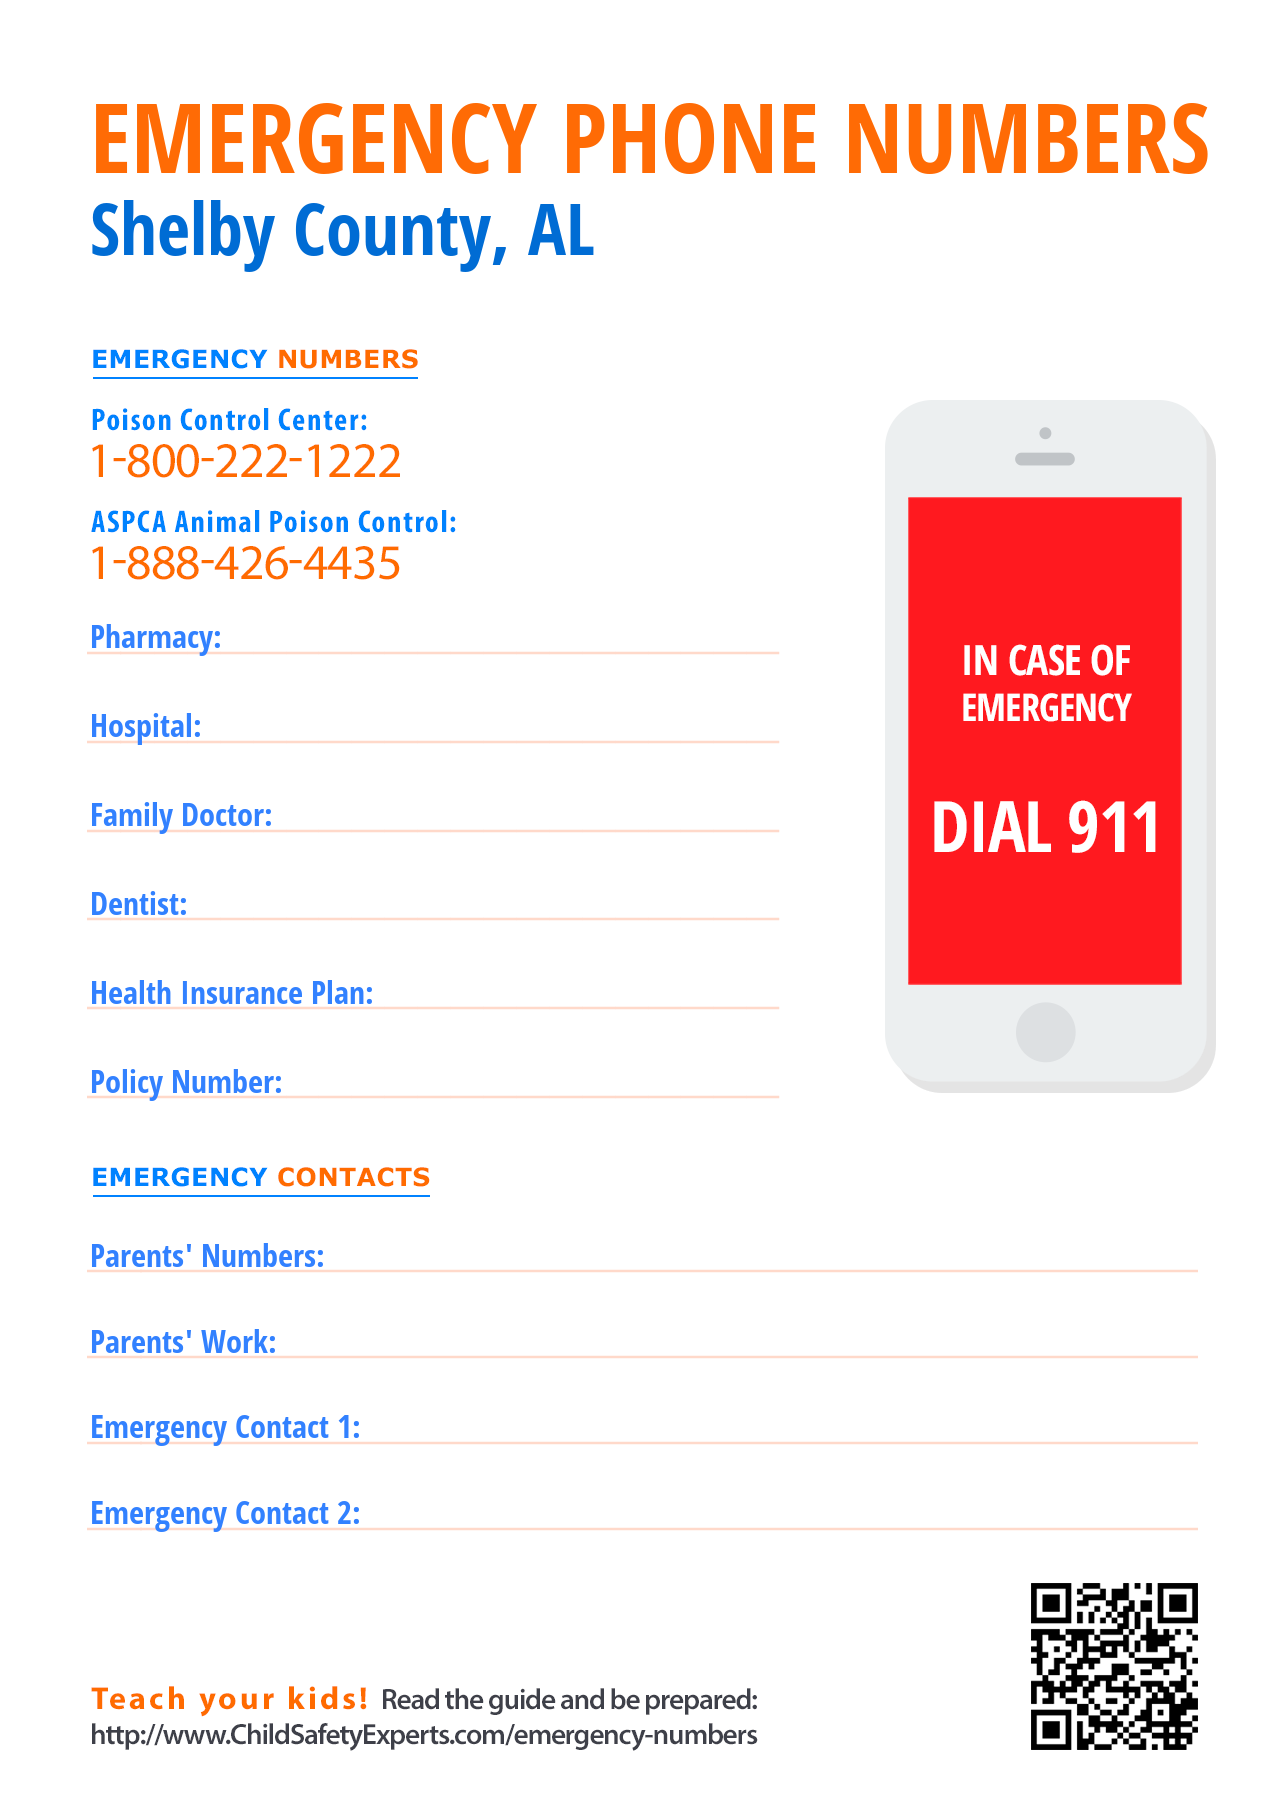 Important emergency phone numbers in Shelby County, Alabama